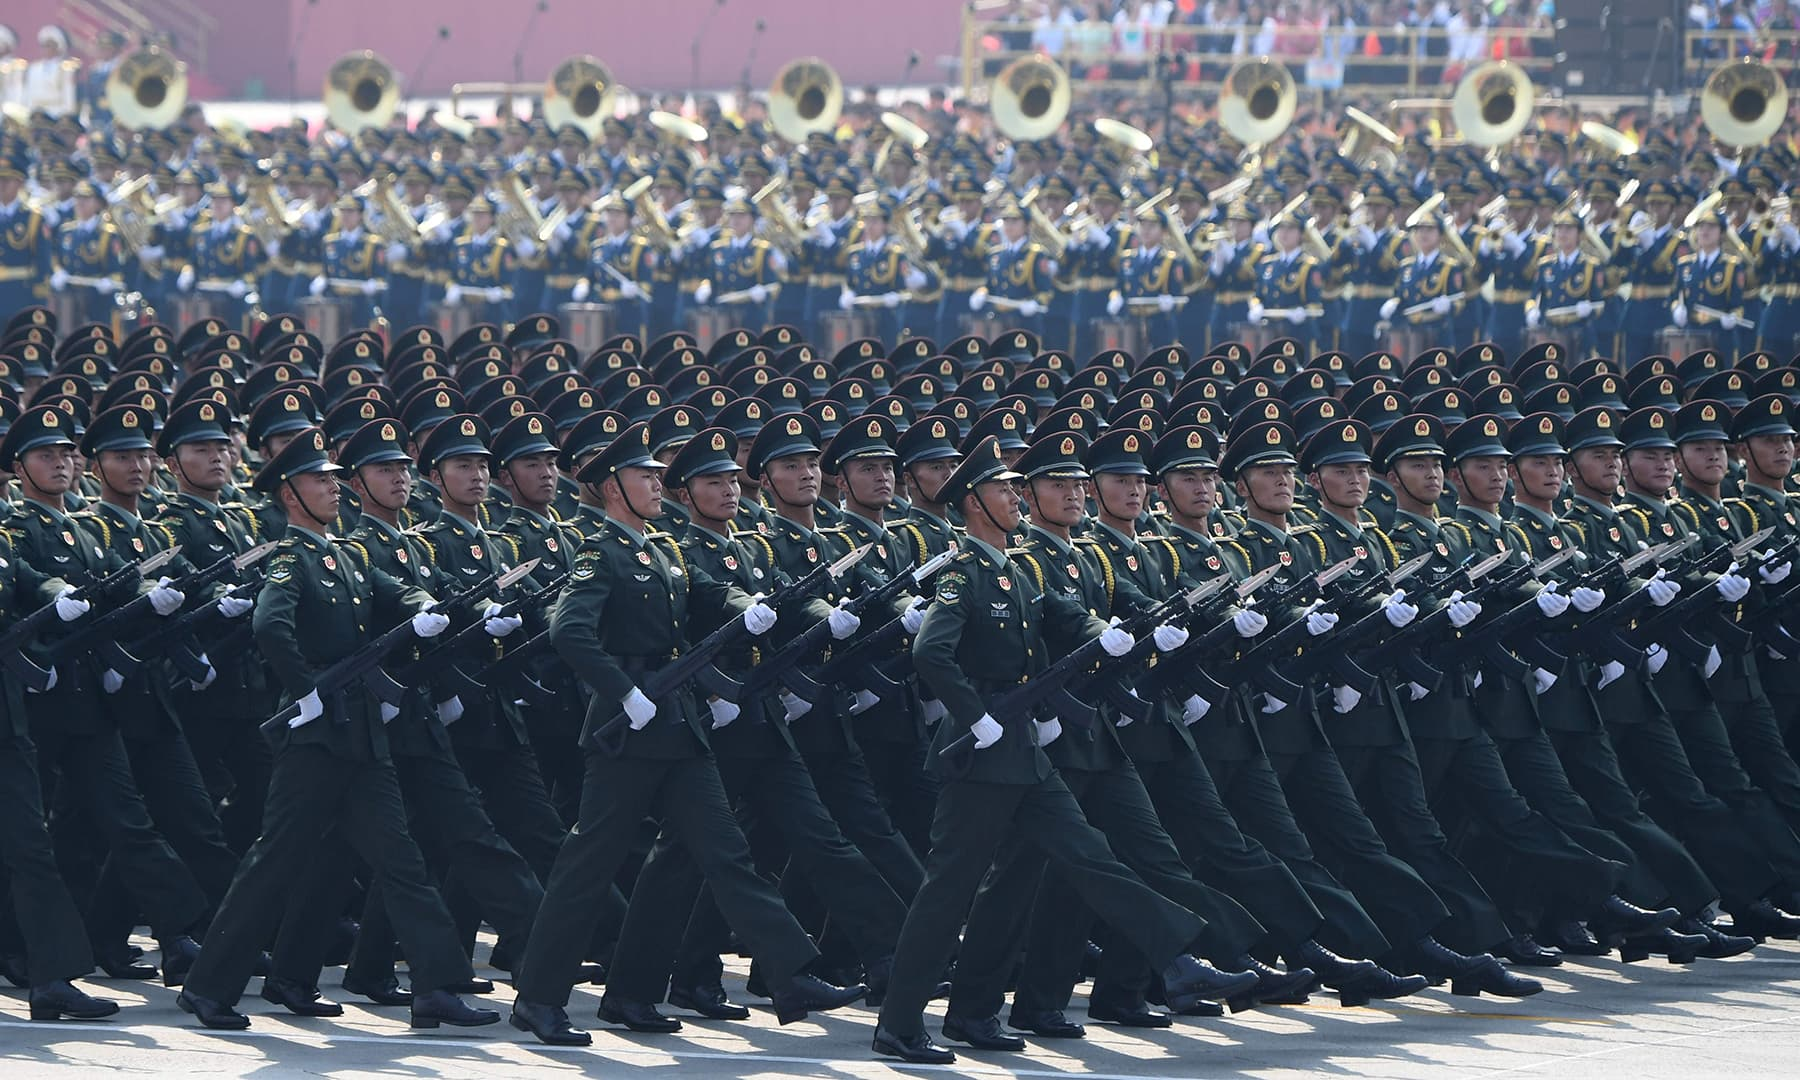 Chinese troops march during a military parade in Tiananmen Square in Beijing. — AFP